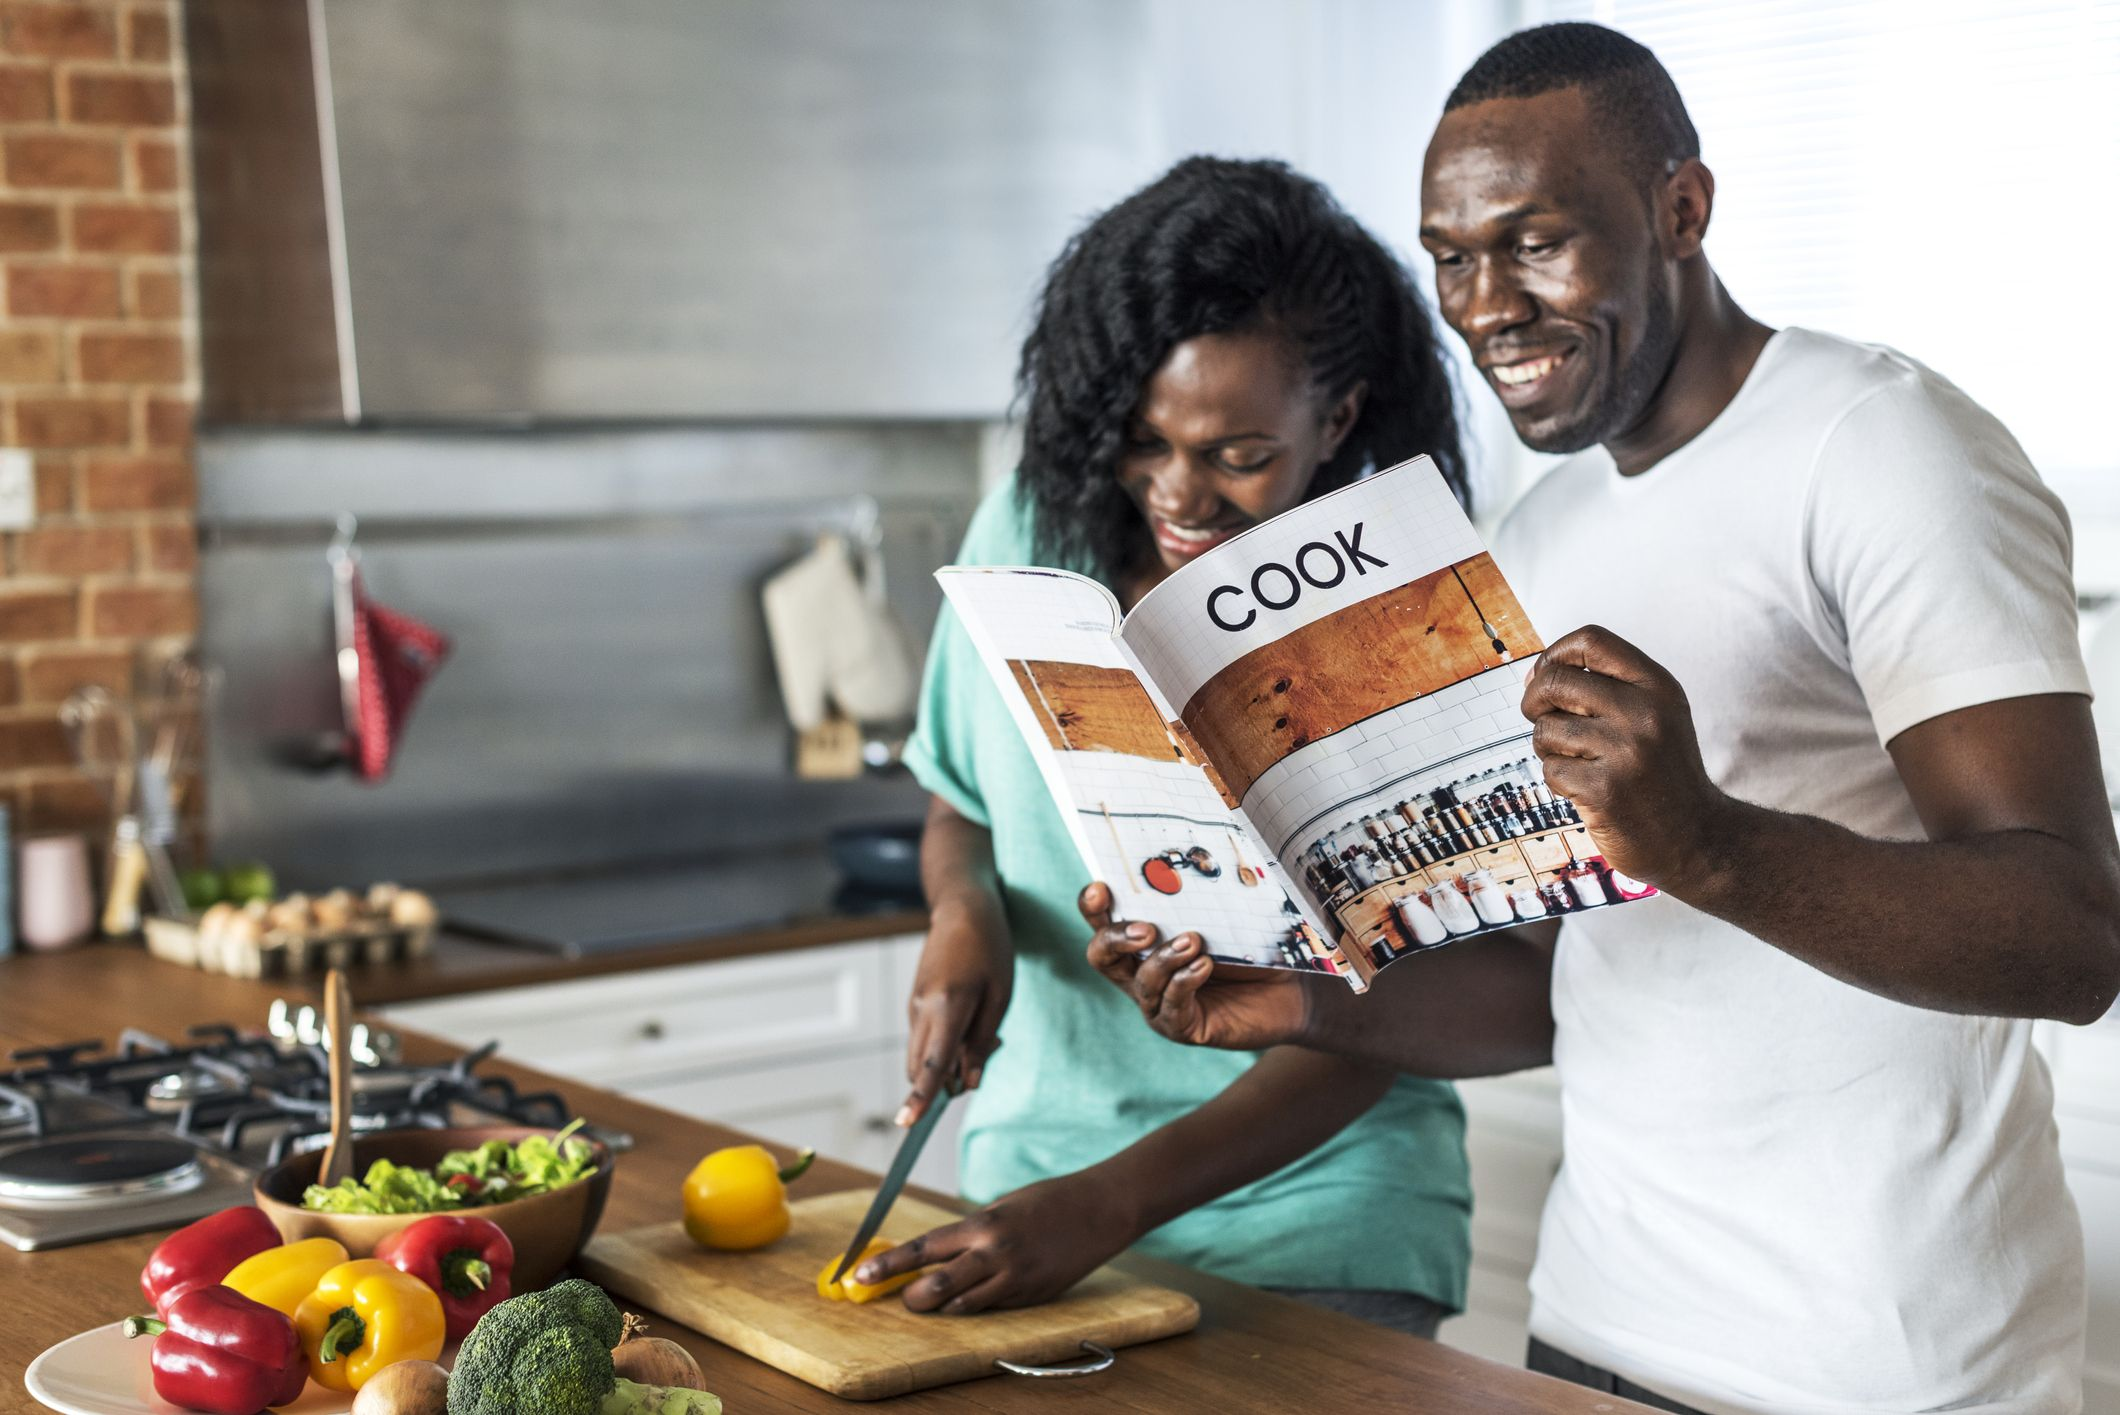 The 10 Best Healthy Cookbooks, According to Dietitians